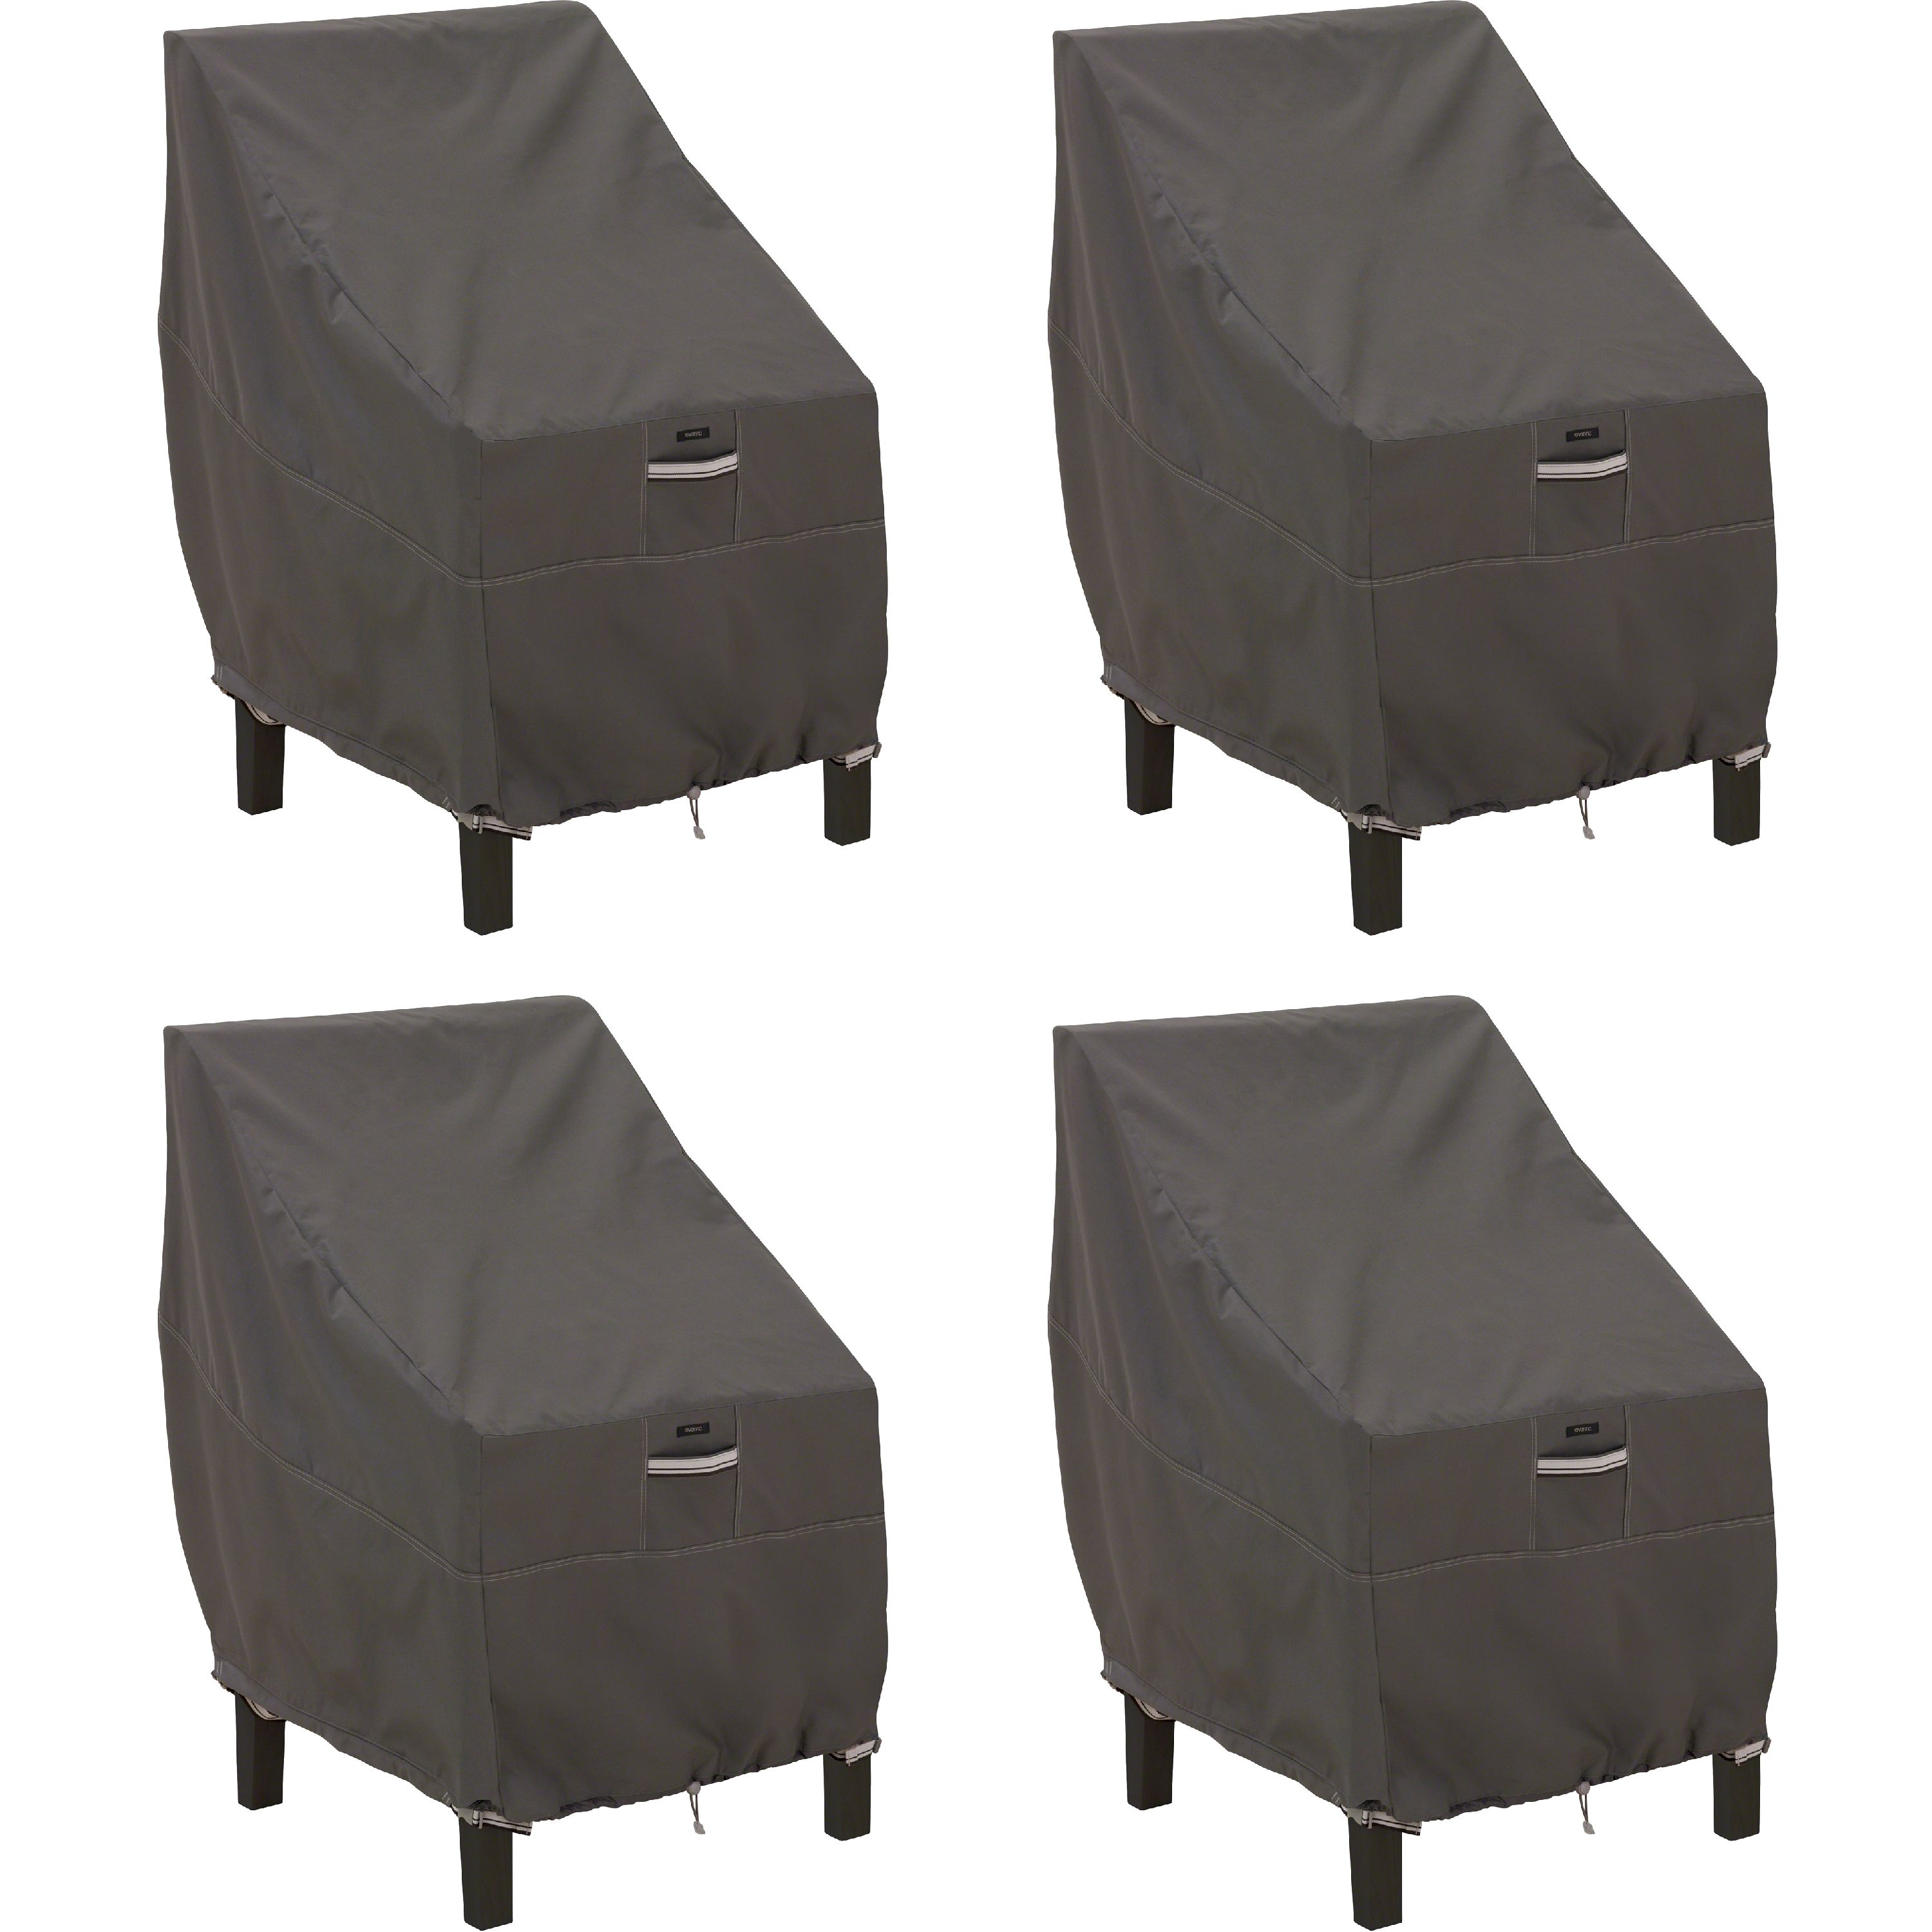 classic accessories ravenna chair furniture storage cover for hampton bay belleville cspring patio chairs - Hampton Bay Outdoor Furniture